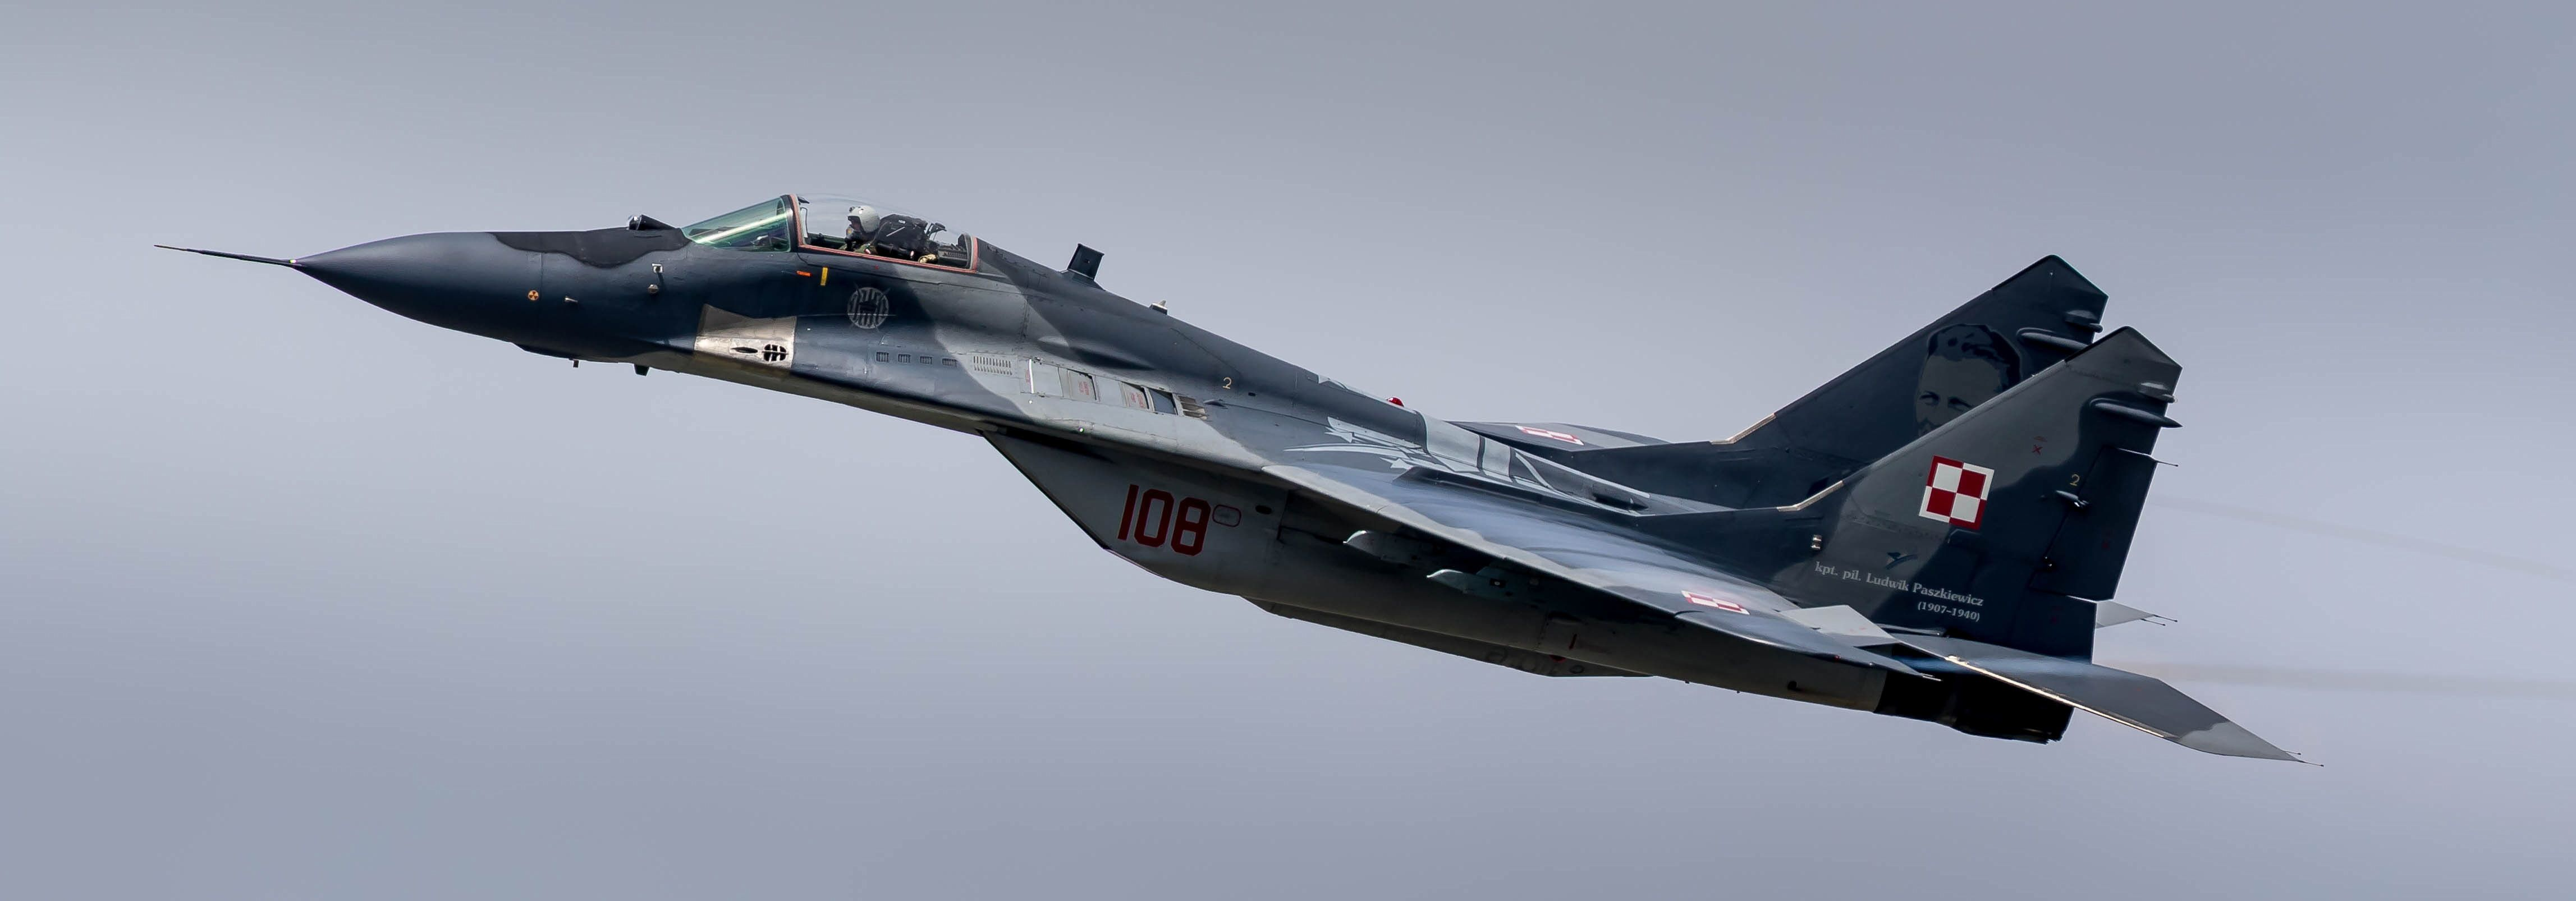 The Sky Fighter The Plane The Mig 29 4k Wallpaper Hdwallpaper Desktop In 2021 Mig 29 Fighter Mig 29 Wallpapers 29 full hd wallpaper hd